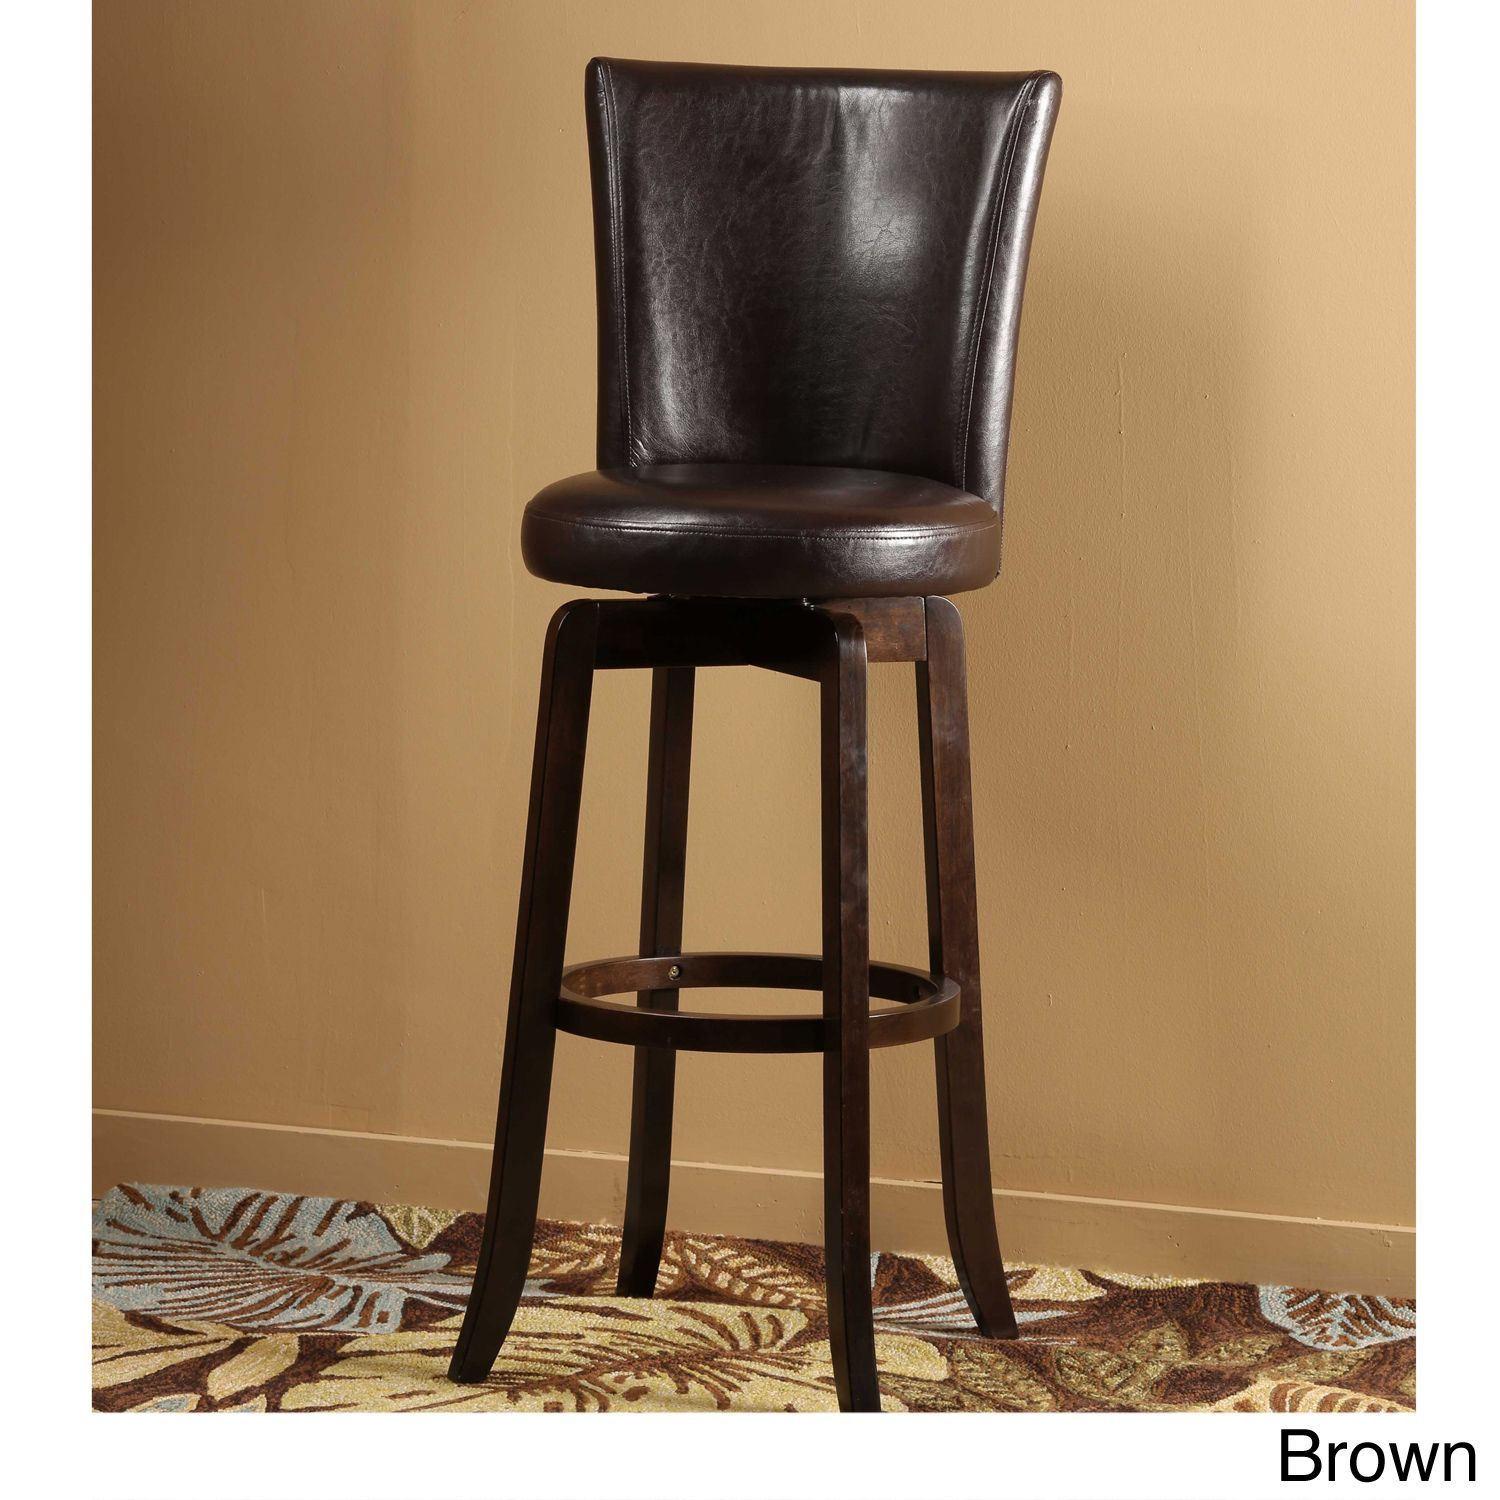 This Stylish Swivel Stool Features Solid Construction And